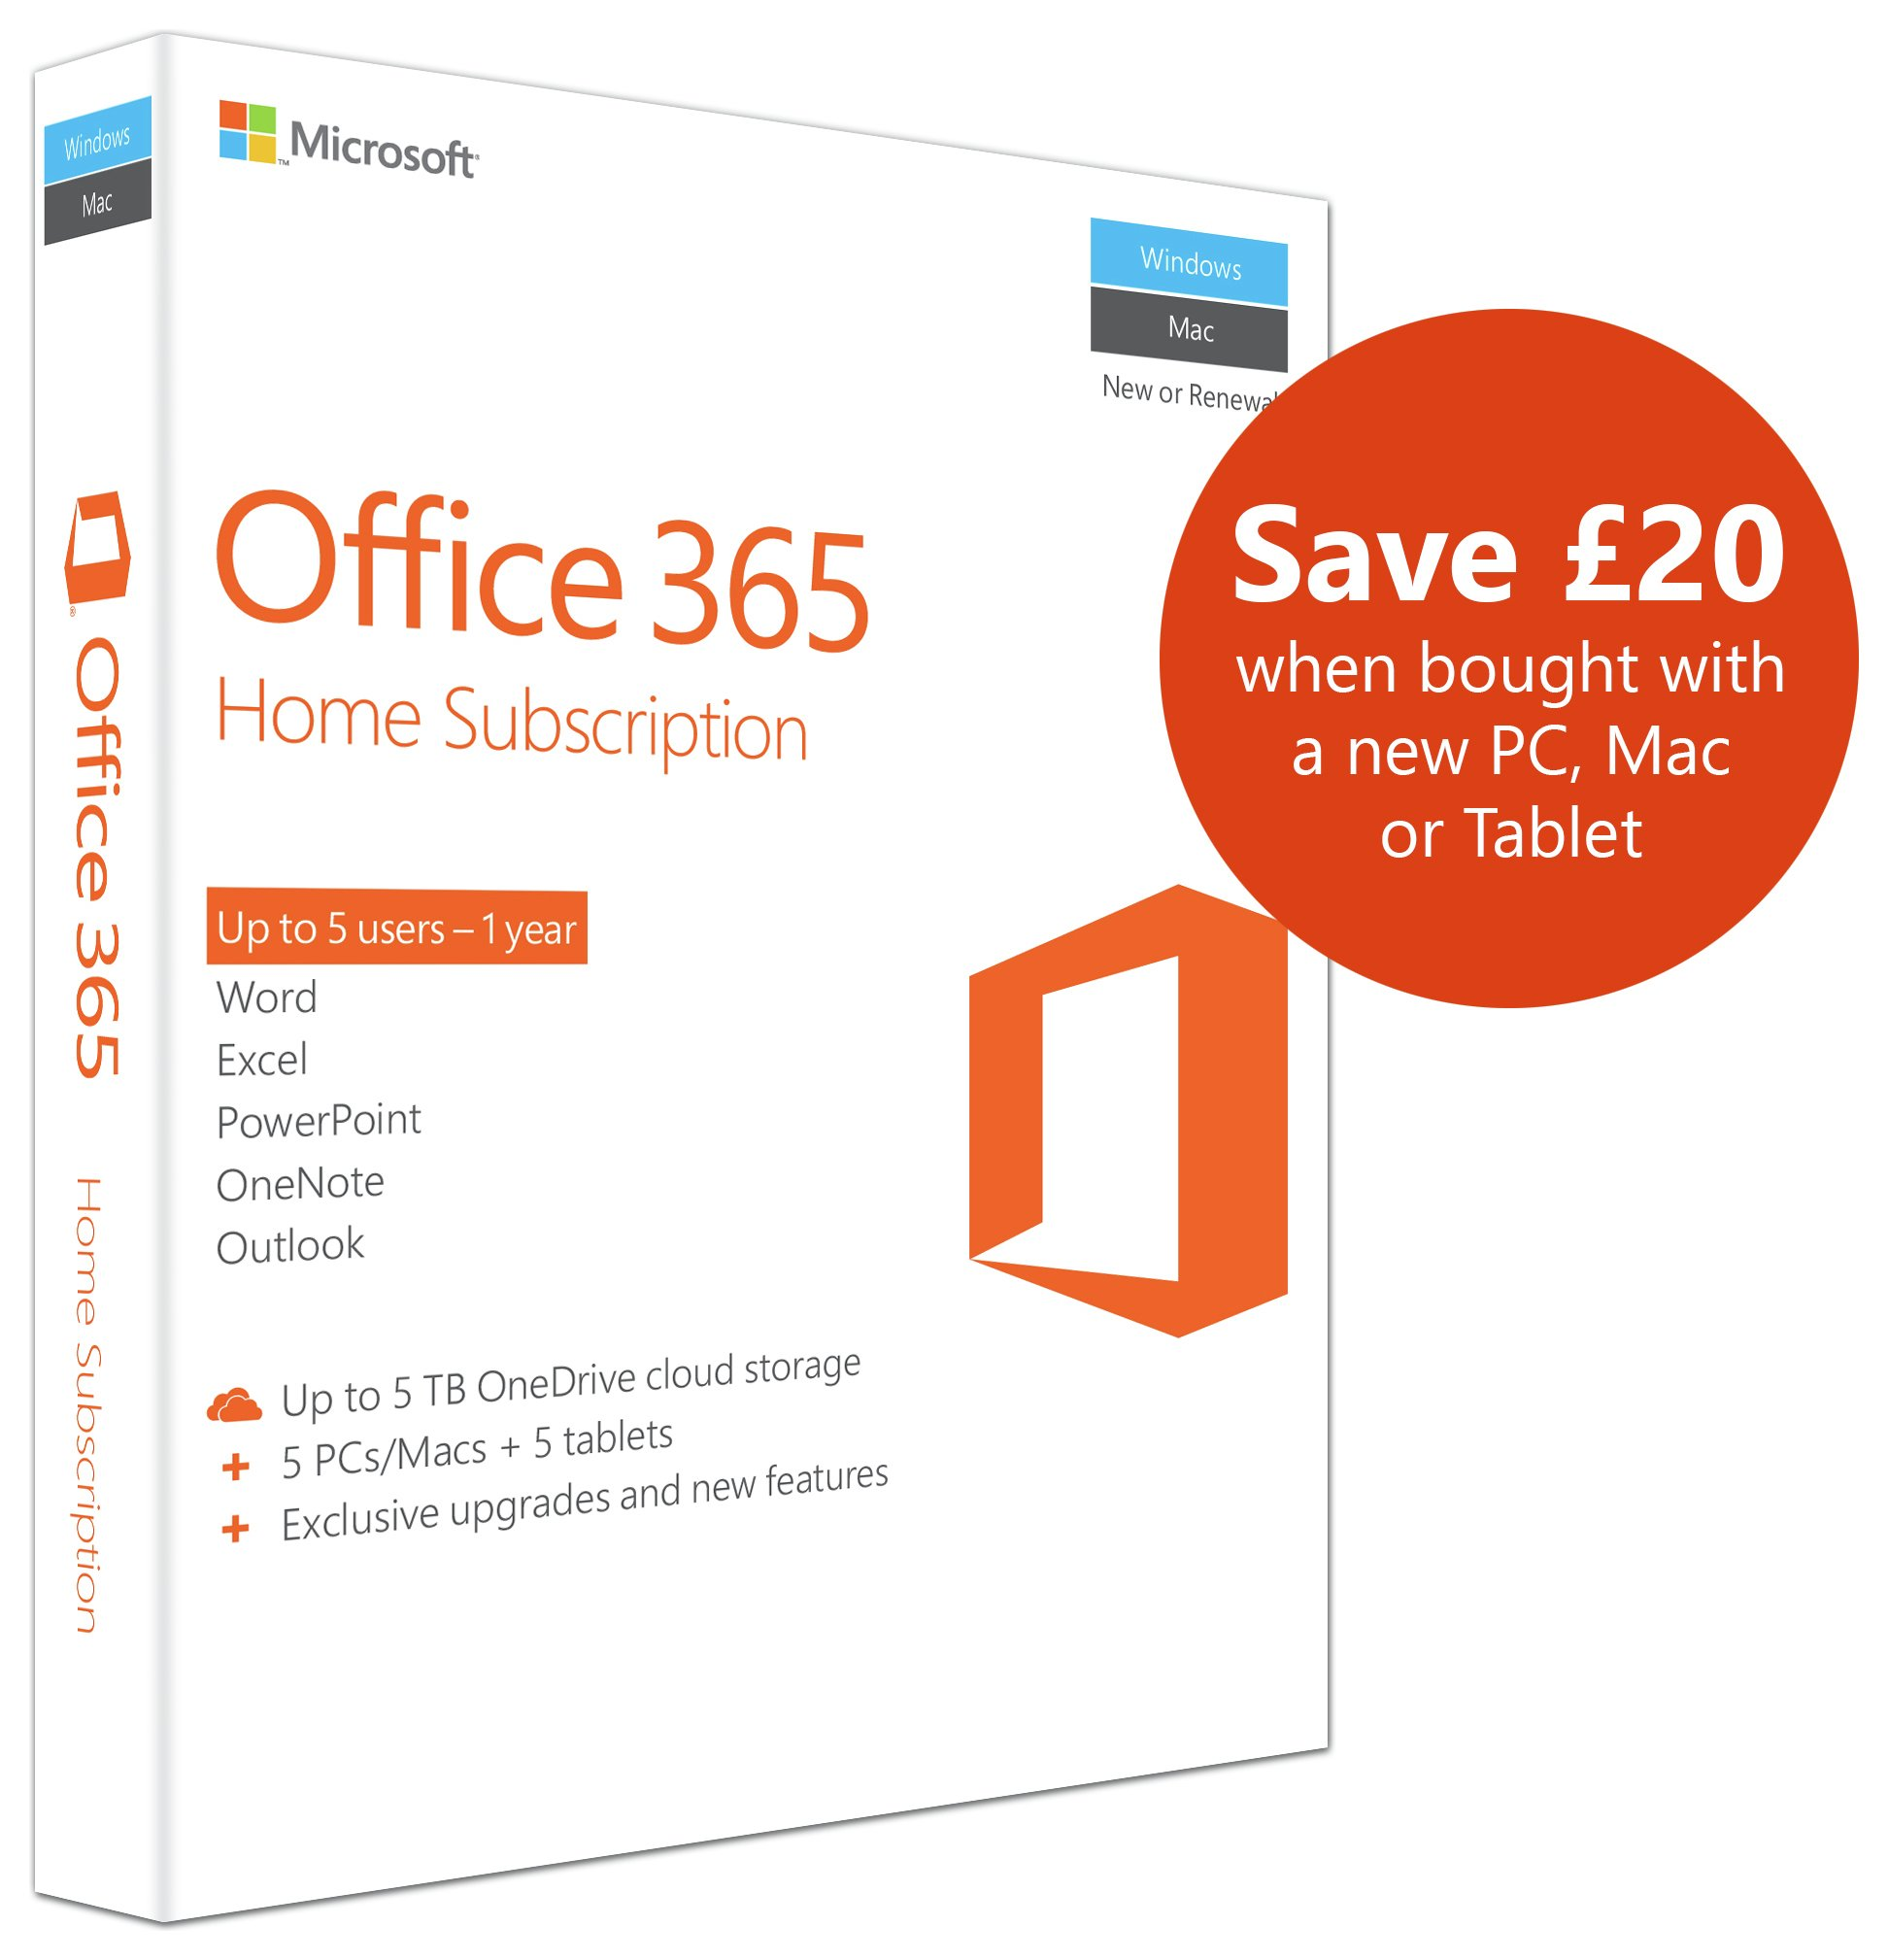 buy microsoft office 365 1 year 5 user home at argos.co.uk - your